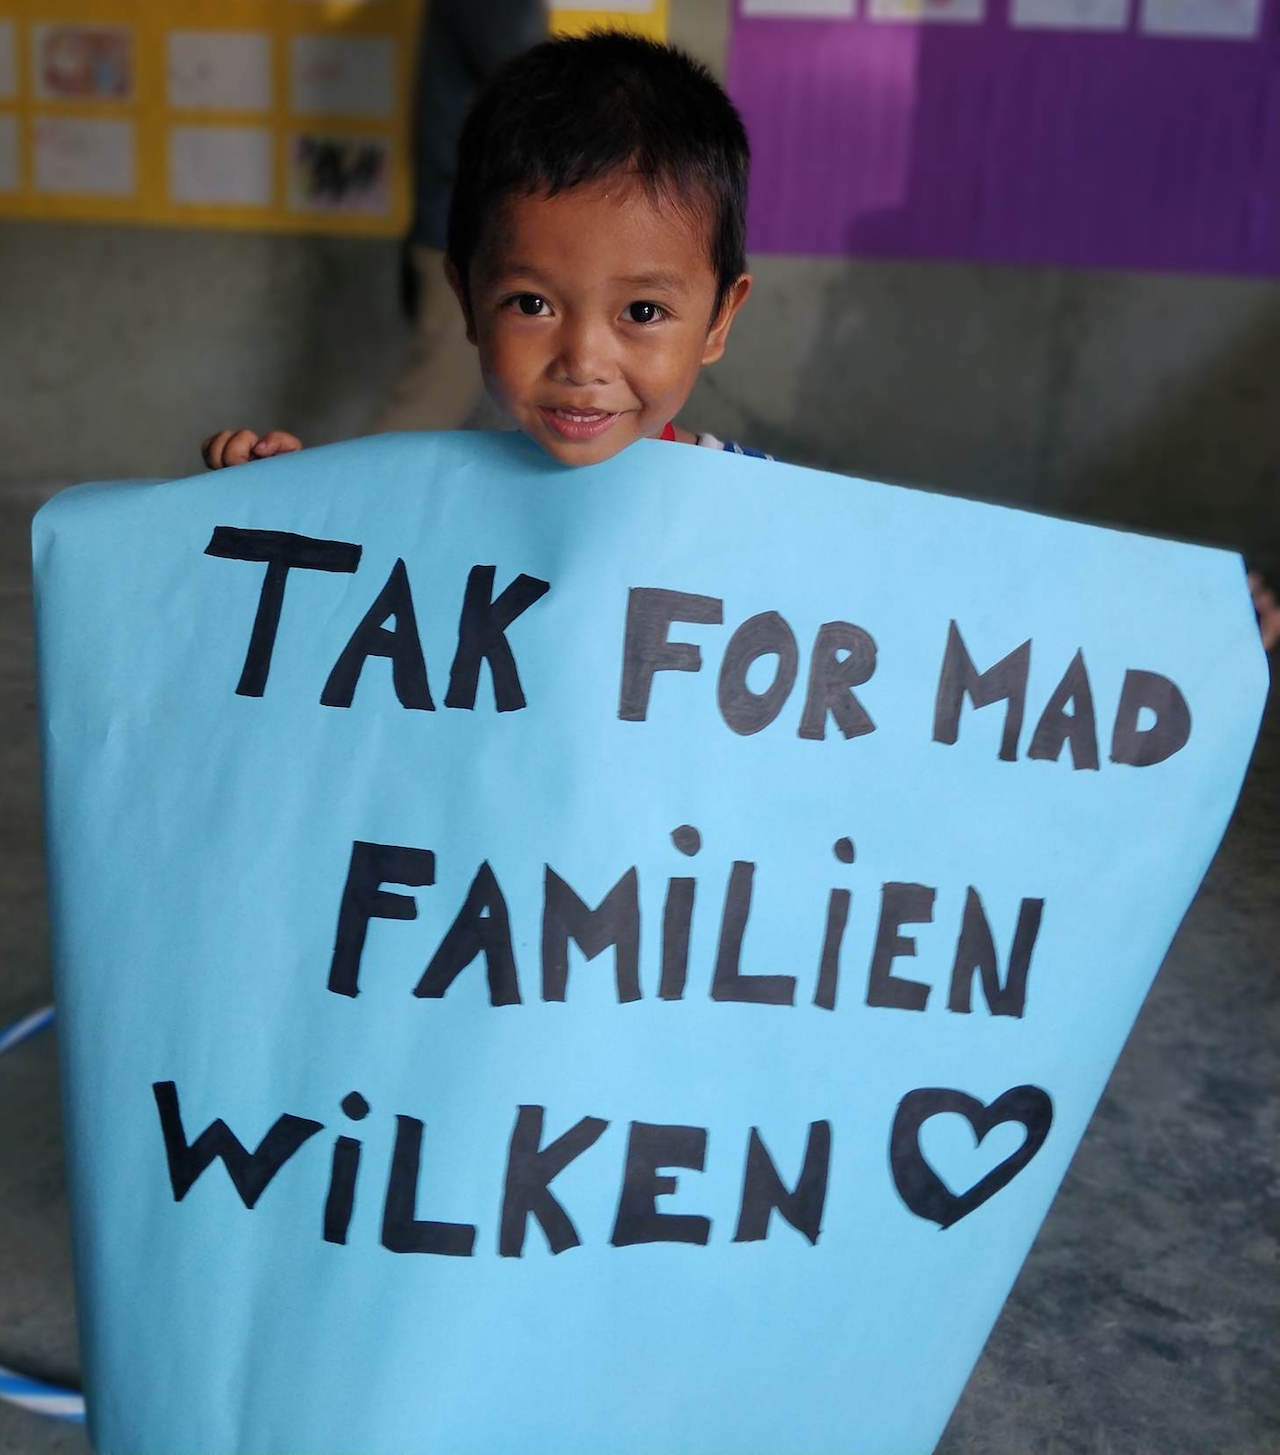 Bag-om-filipino-street-kids-tak-for-mad